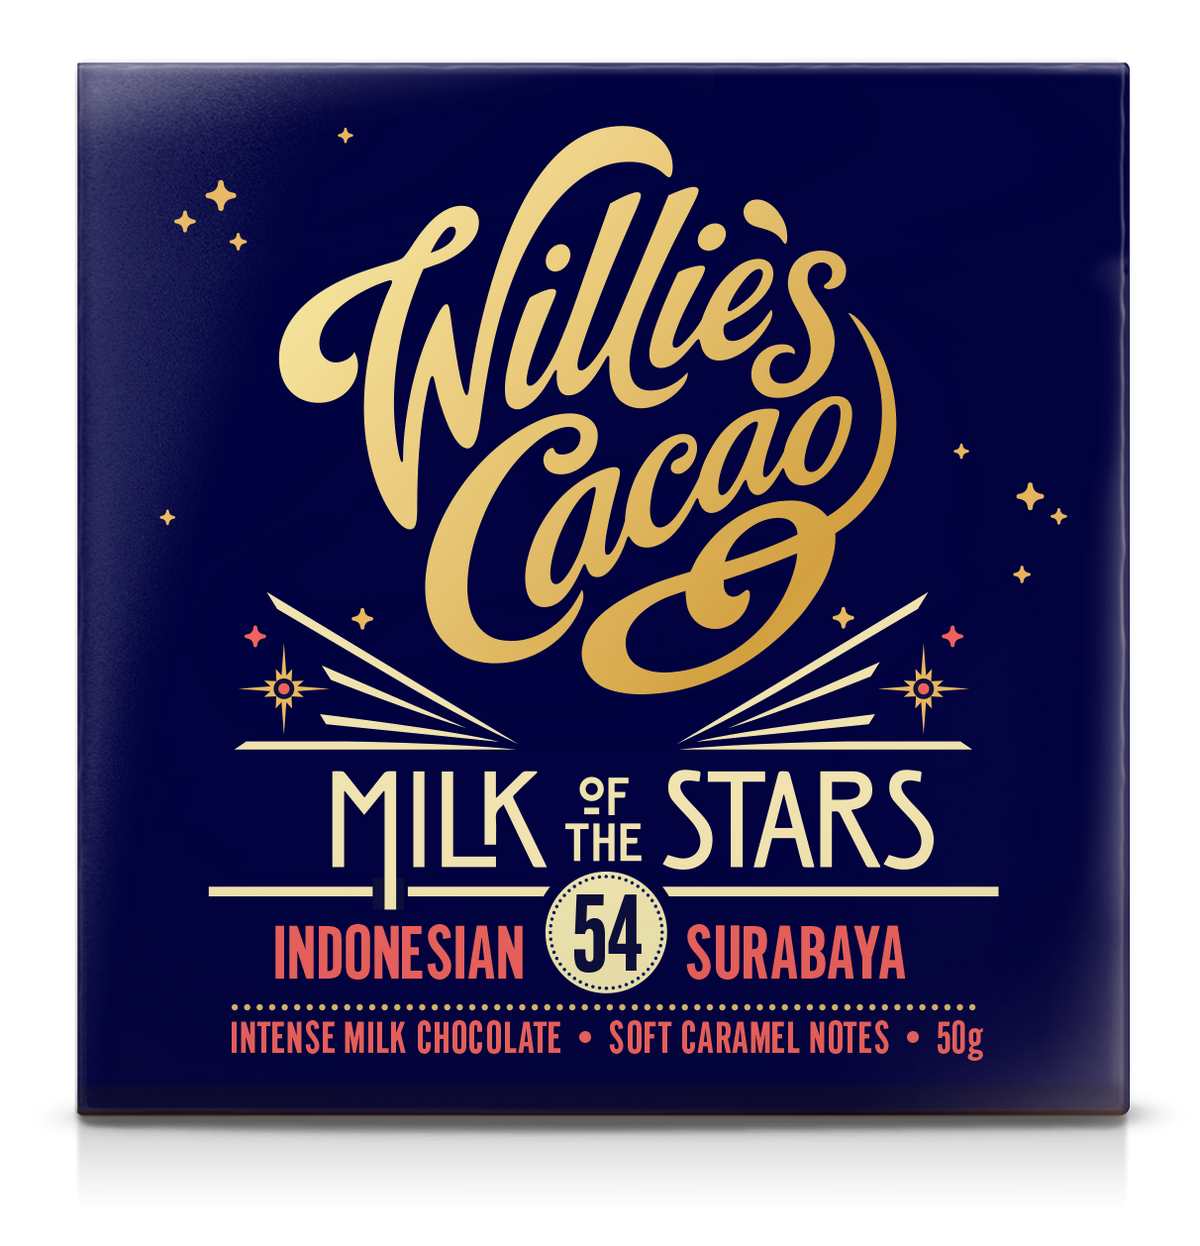 Willie's Cacao Milk of the Stars Indonesian Surabaya 54